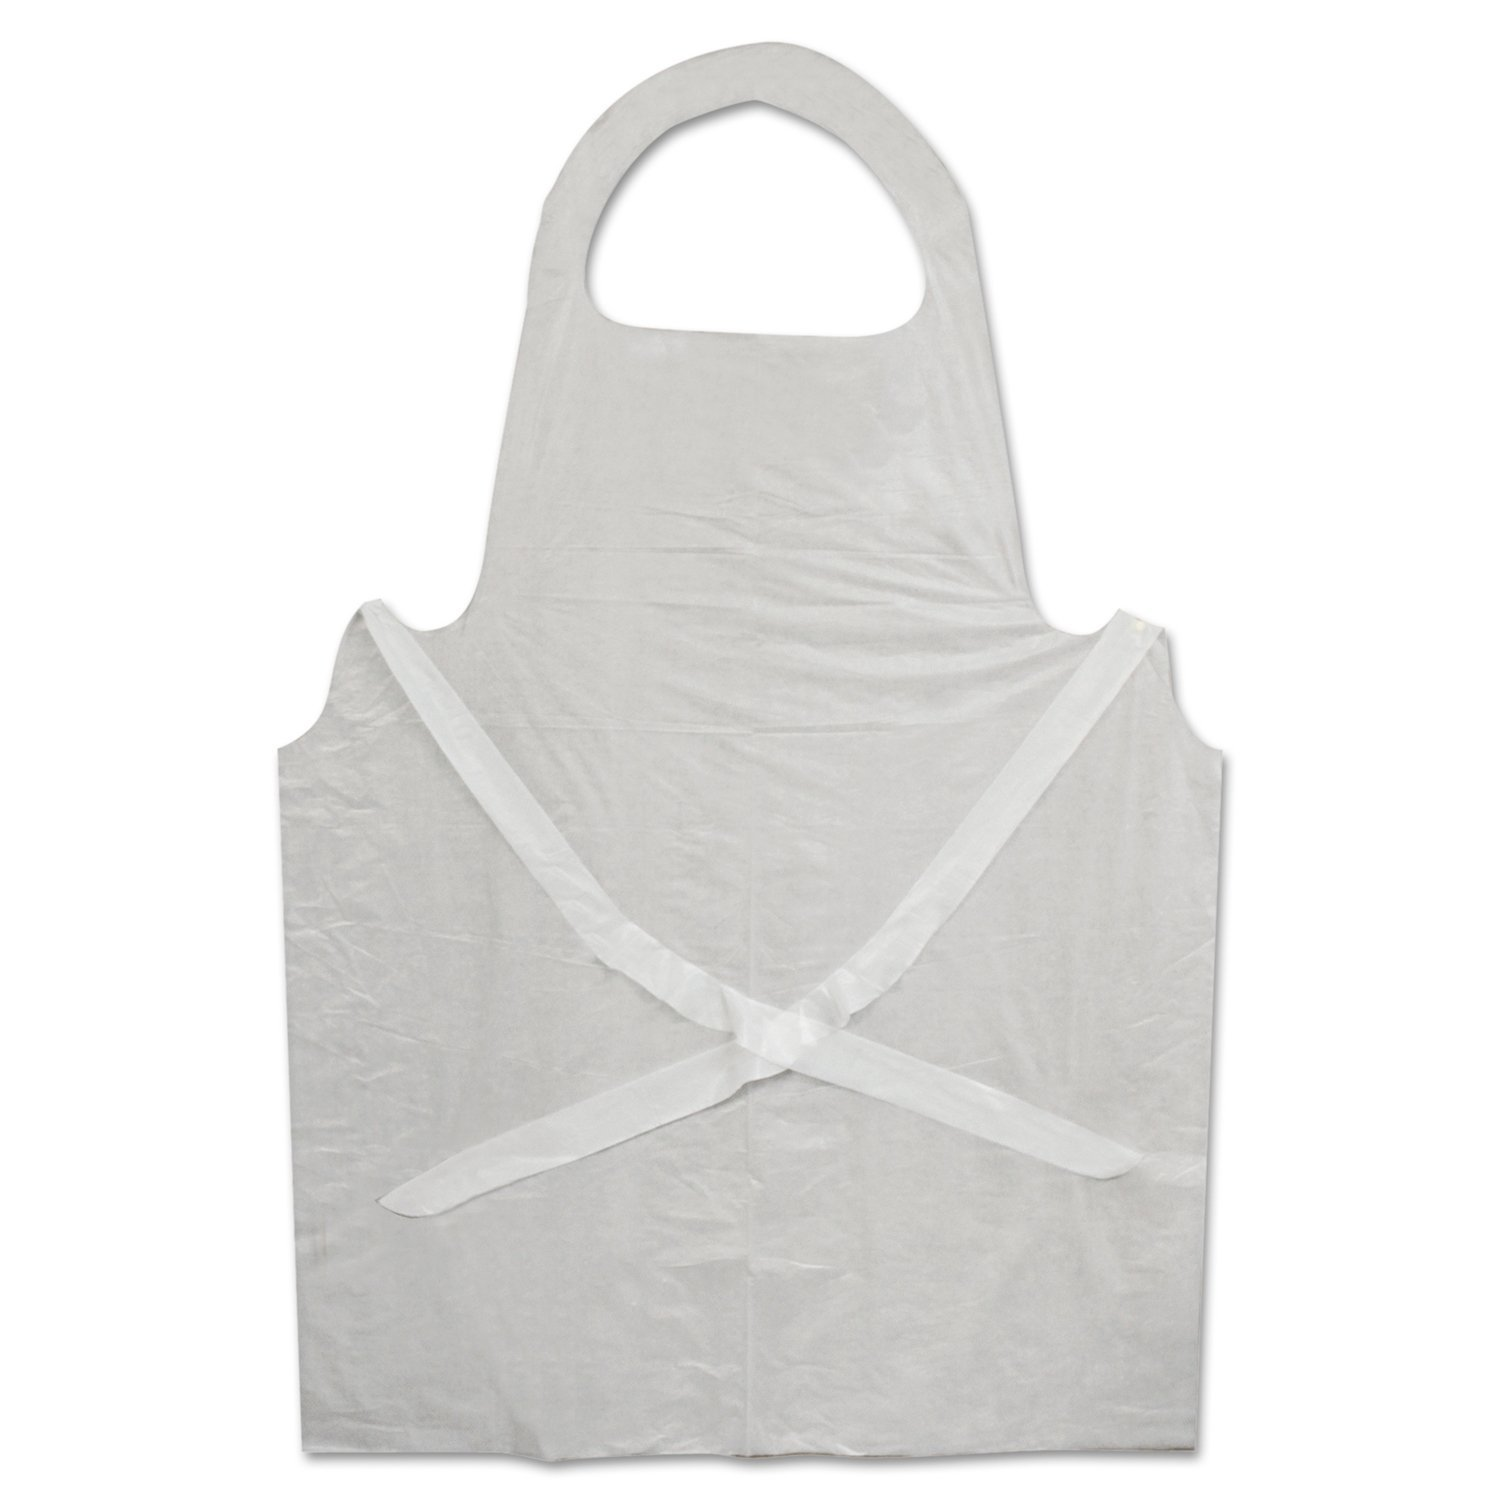 White disposable apron - Boardwalk 390 Disposable Apron White Poly 28 X 45 1 25 Mil One Size Pack Of 100 Science Lab Aprons Amazon Com Industrial Scientific